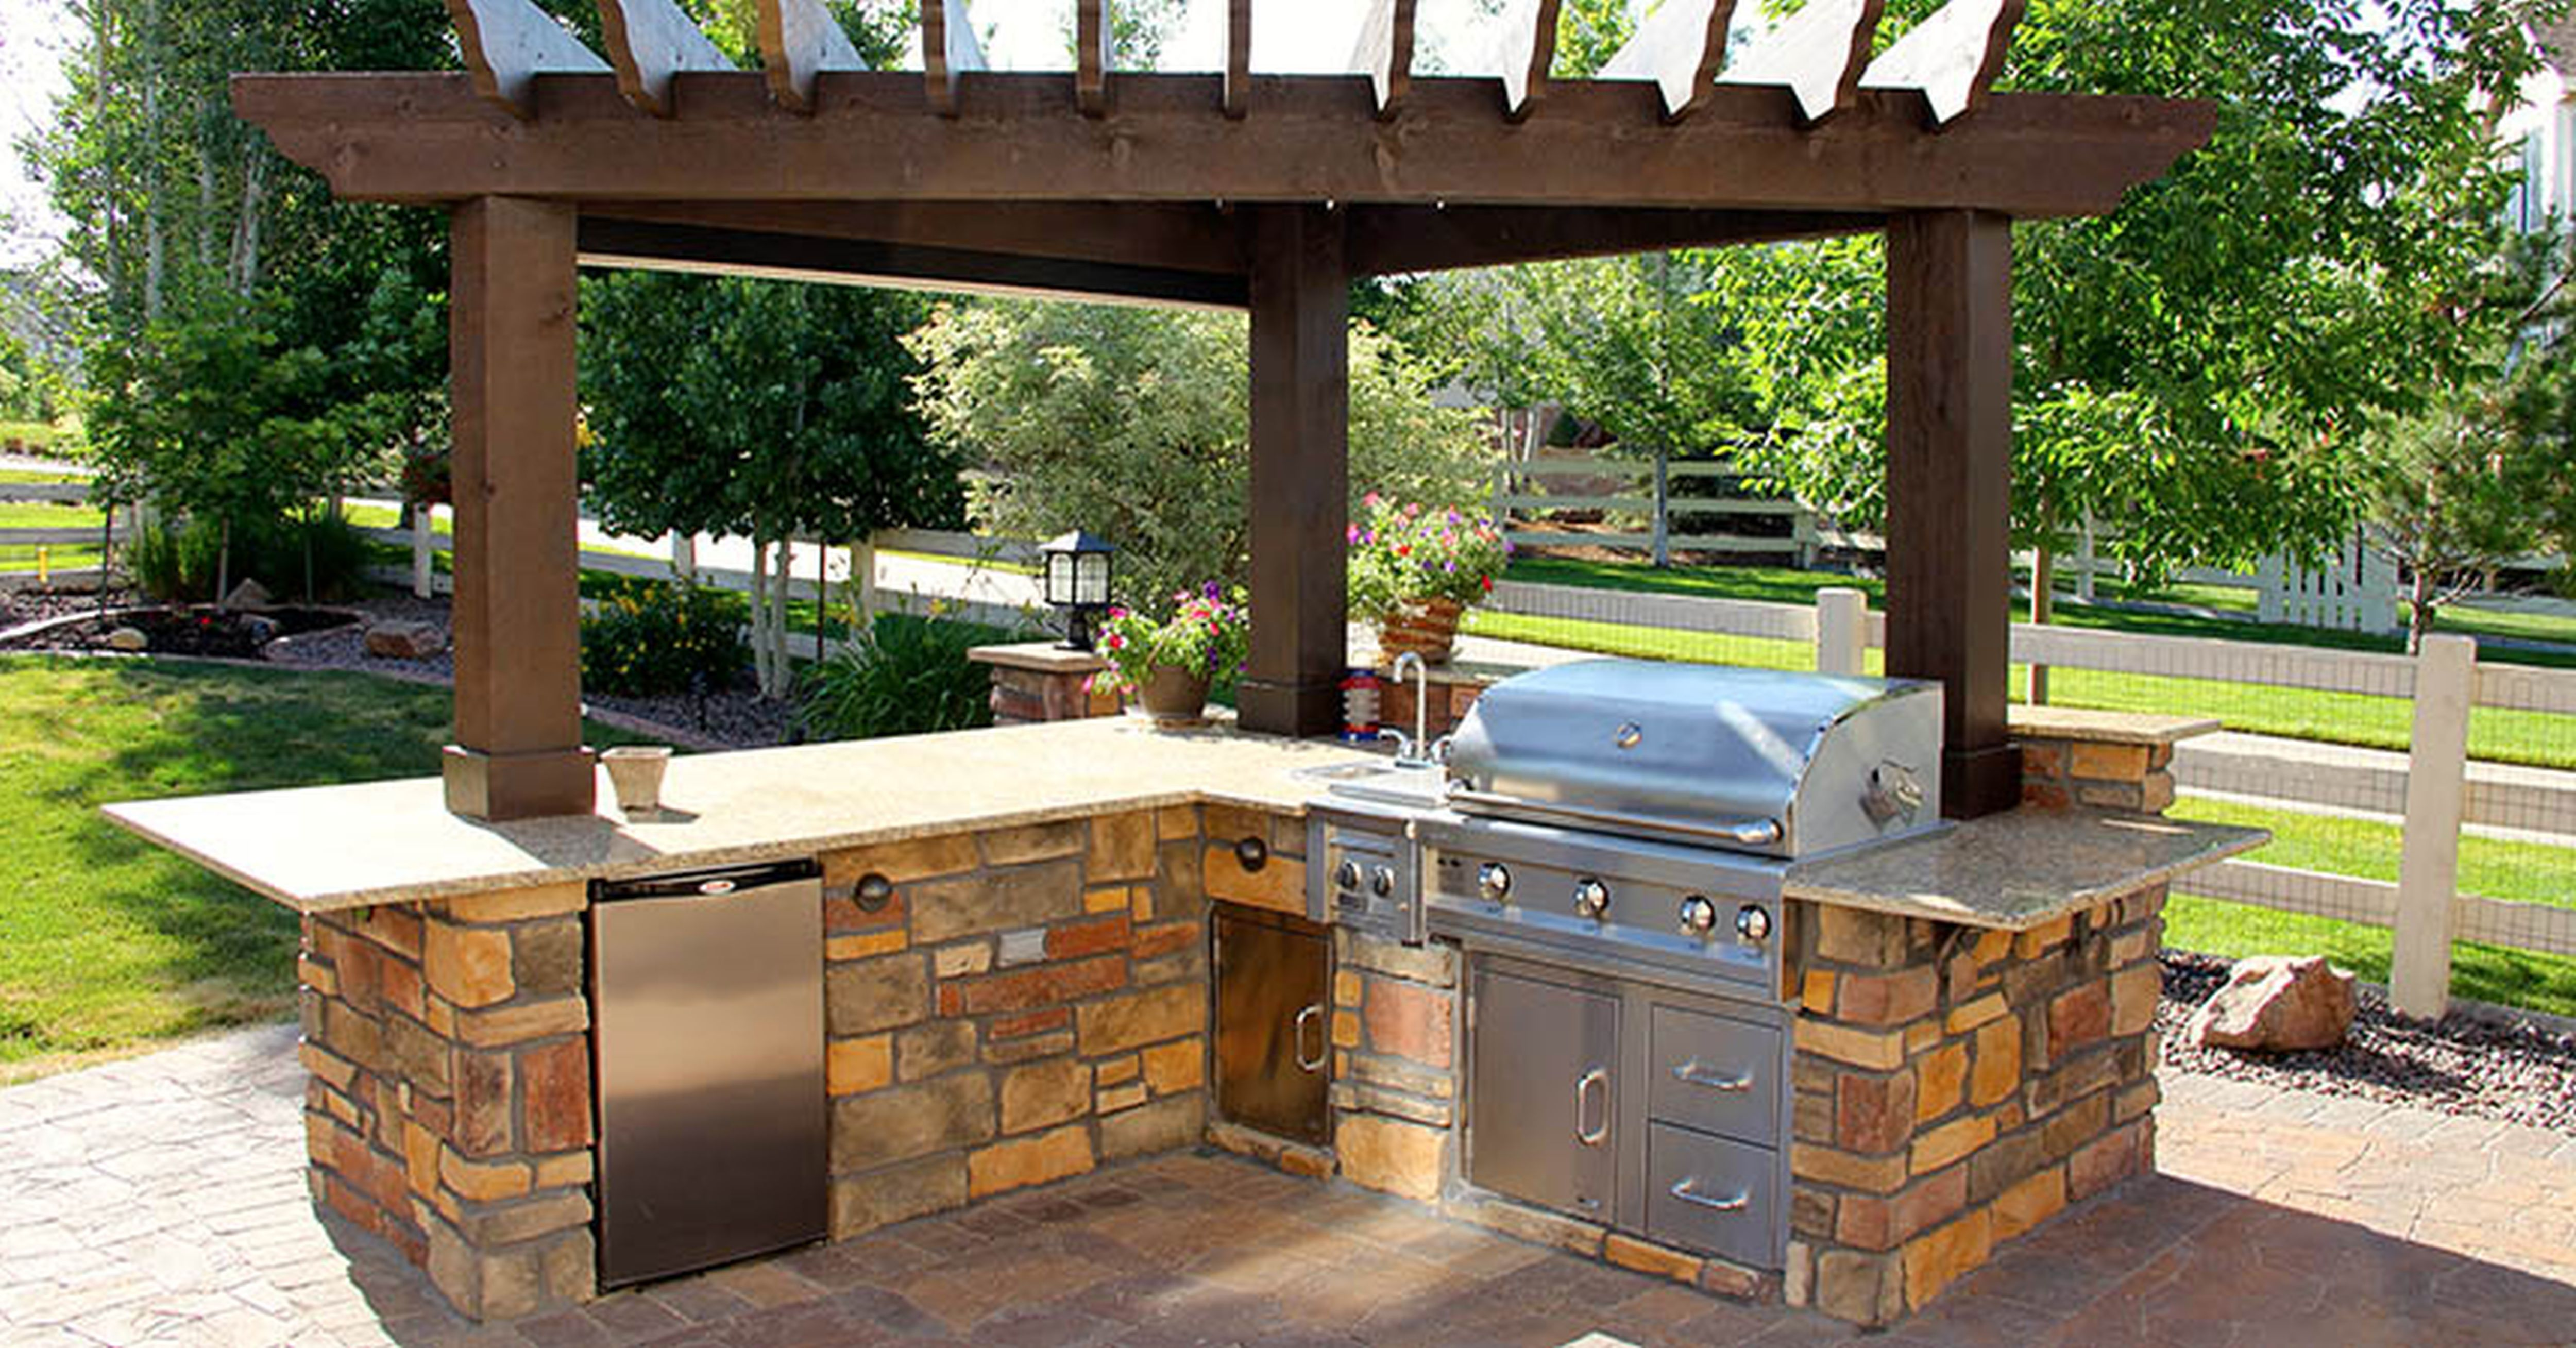 Outdoor kitchen plans ideas and tips for getting the for House and garden kitchen photos